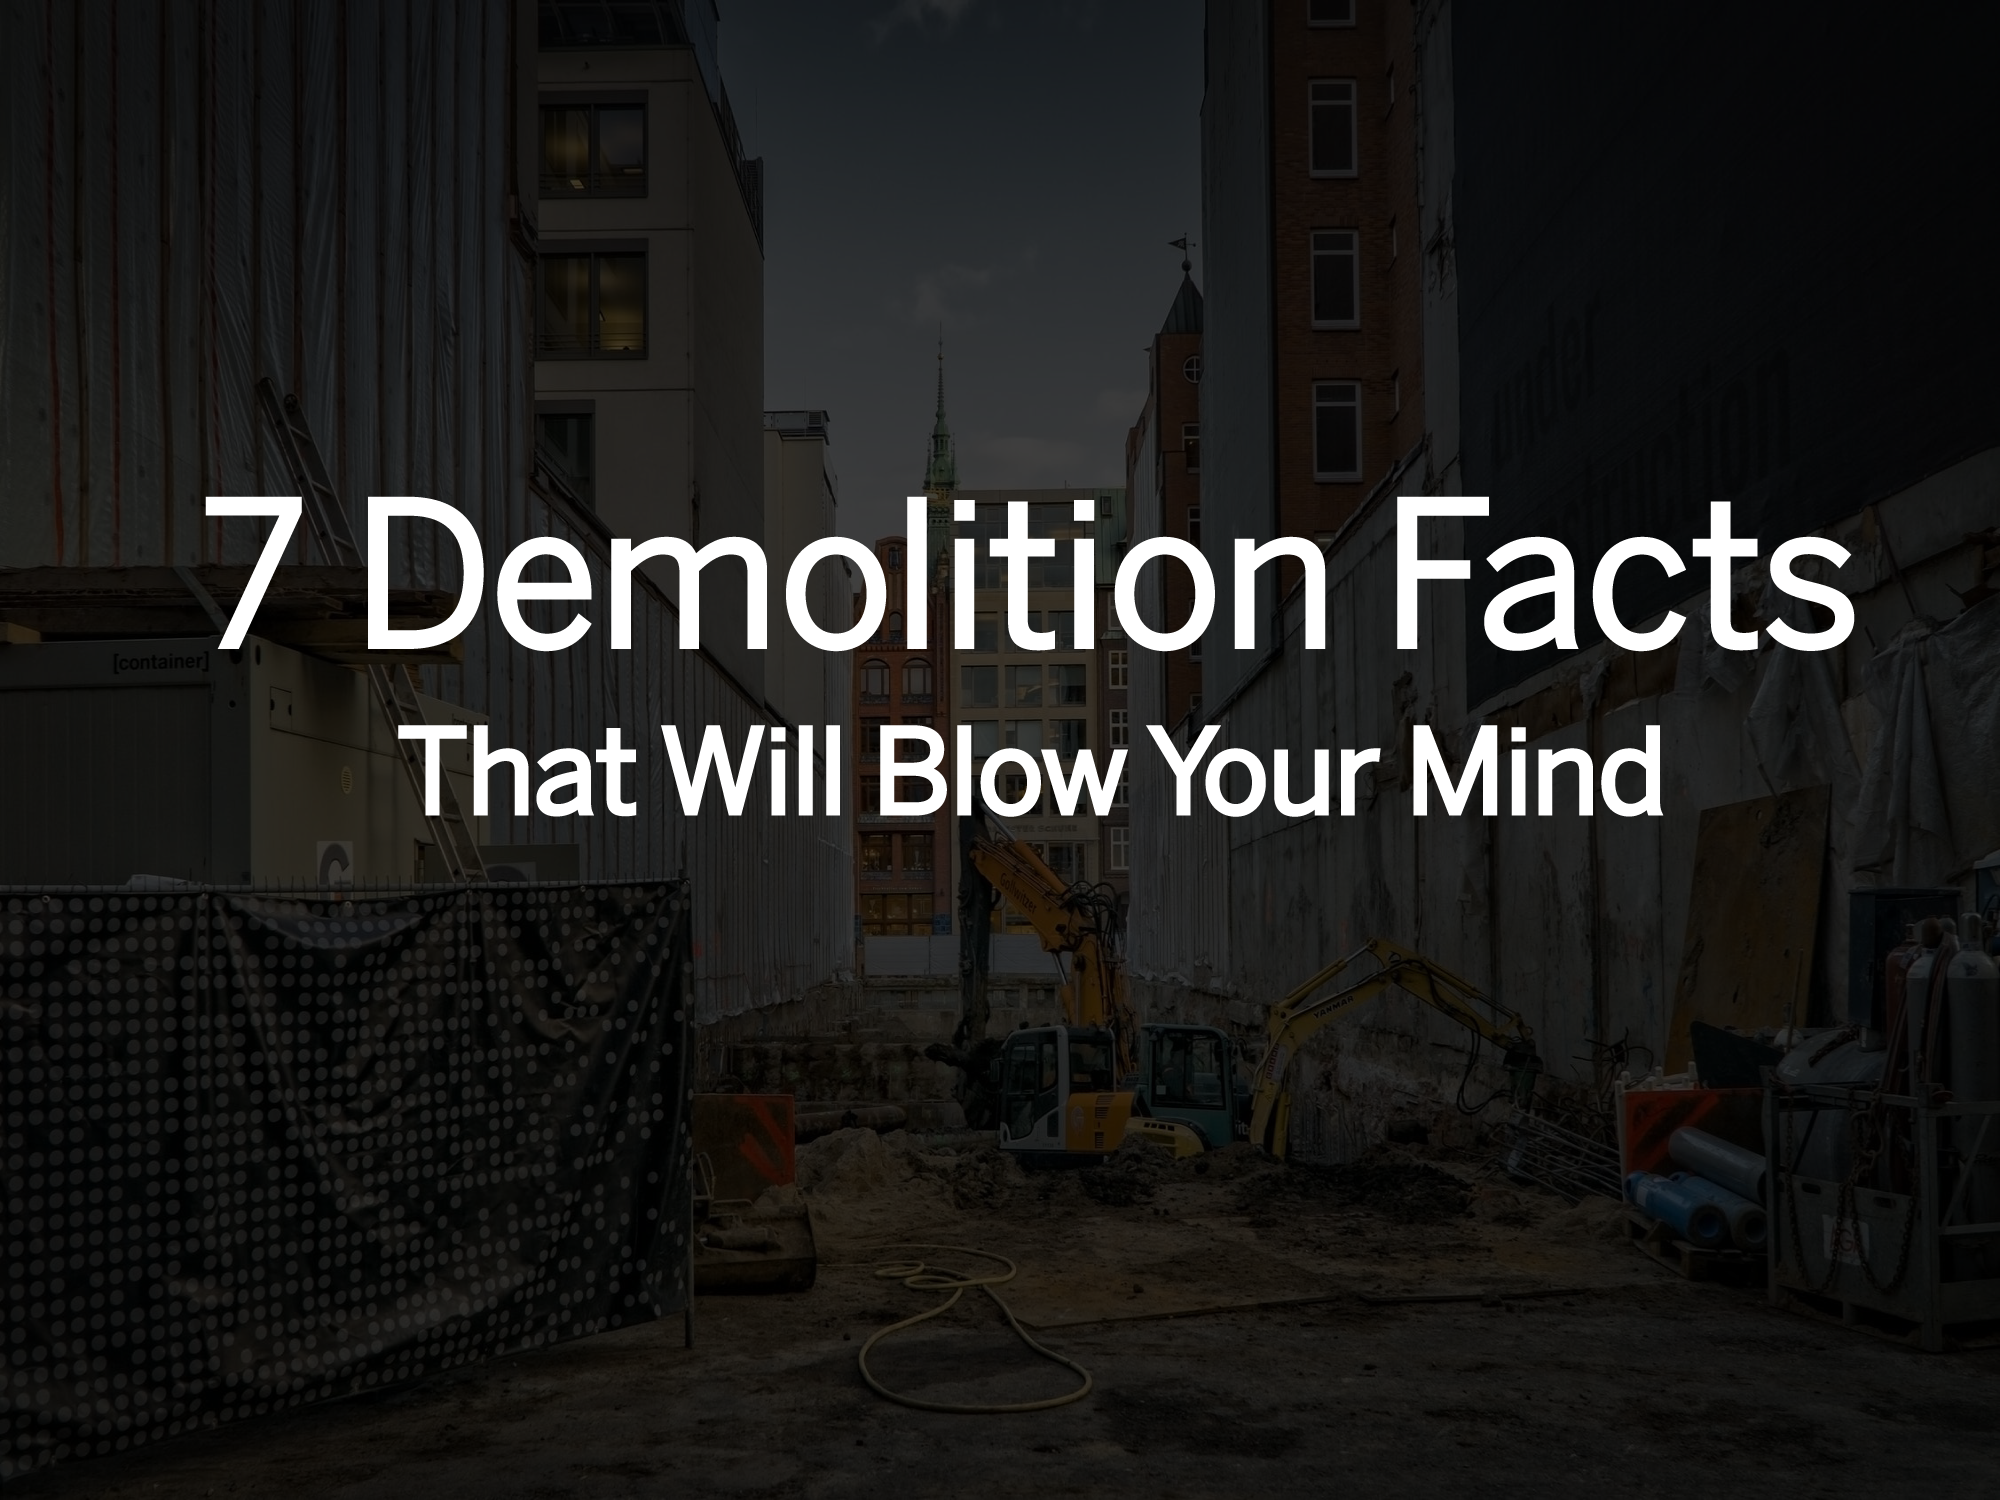 facts about demolition company windsor ontario